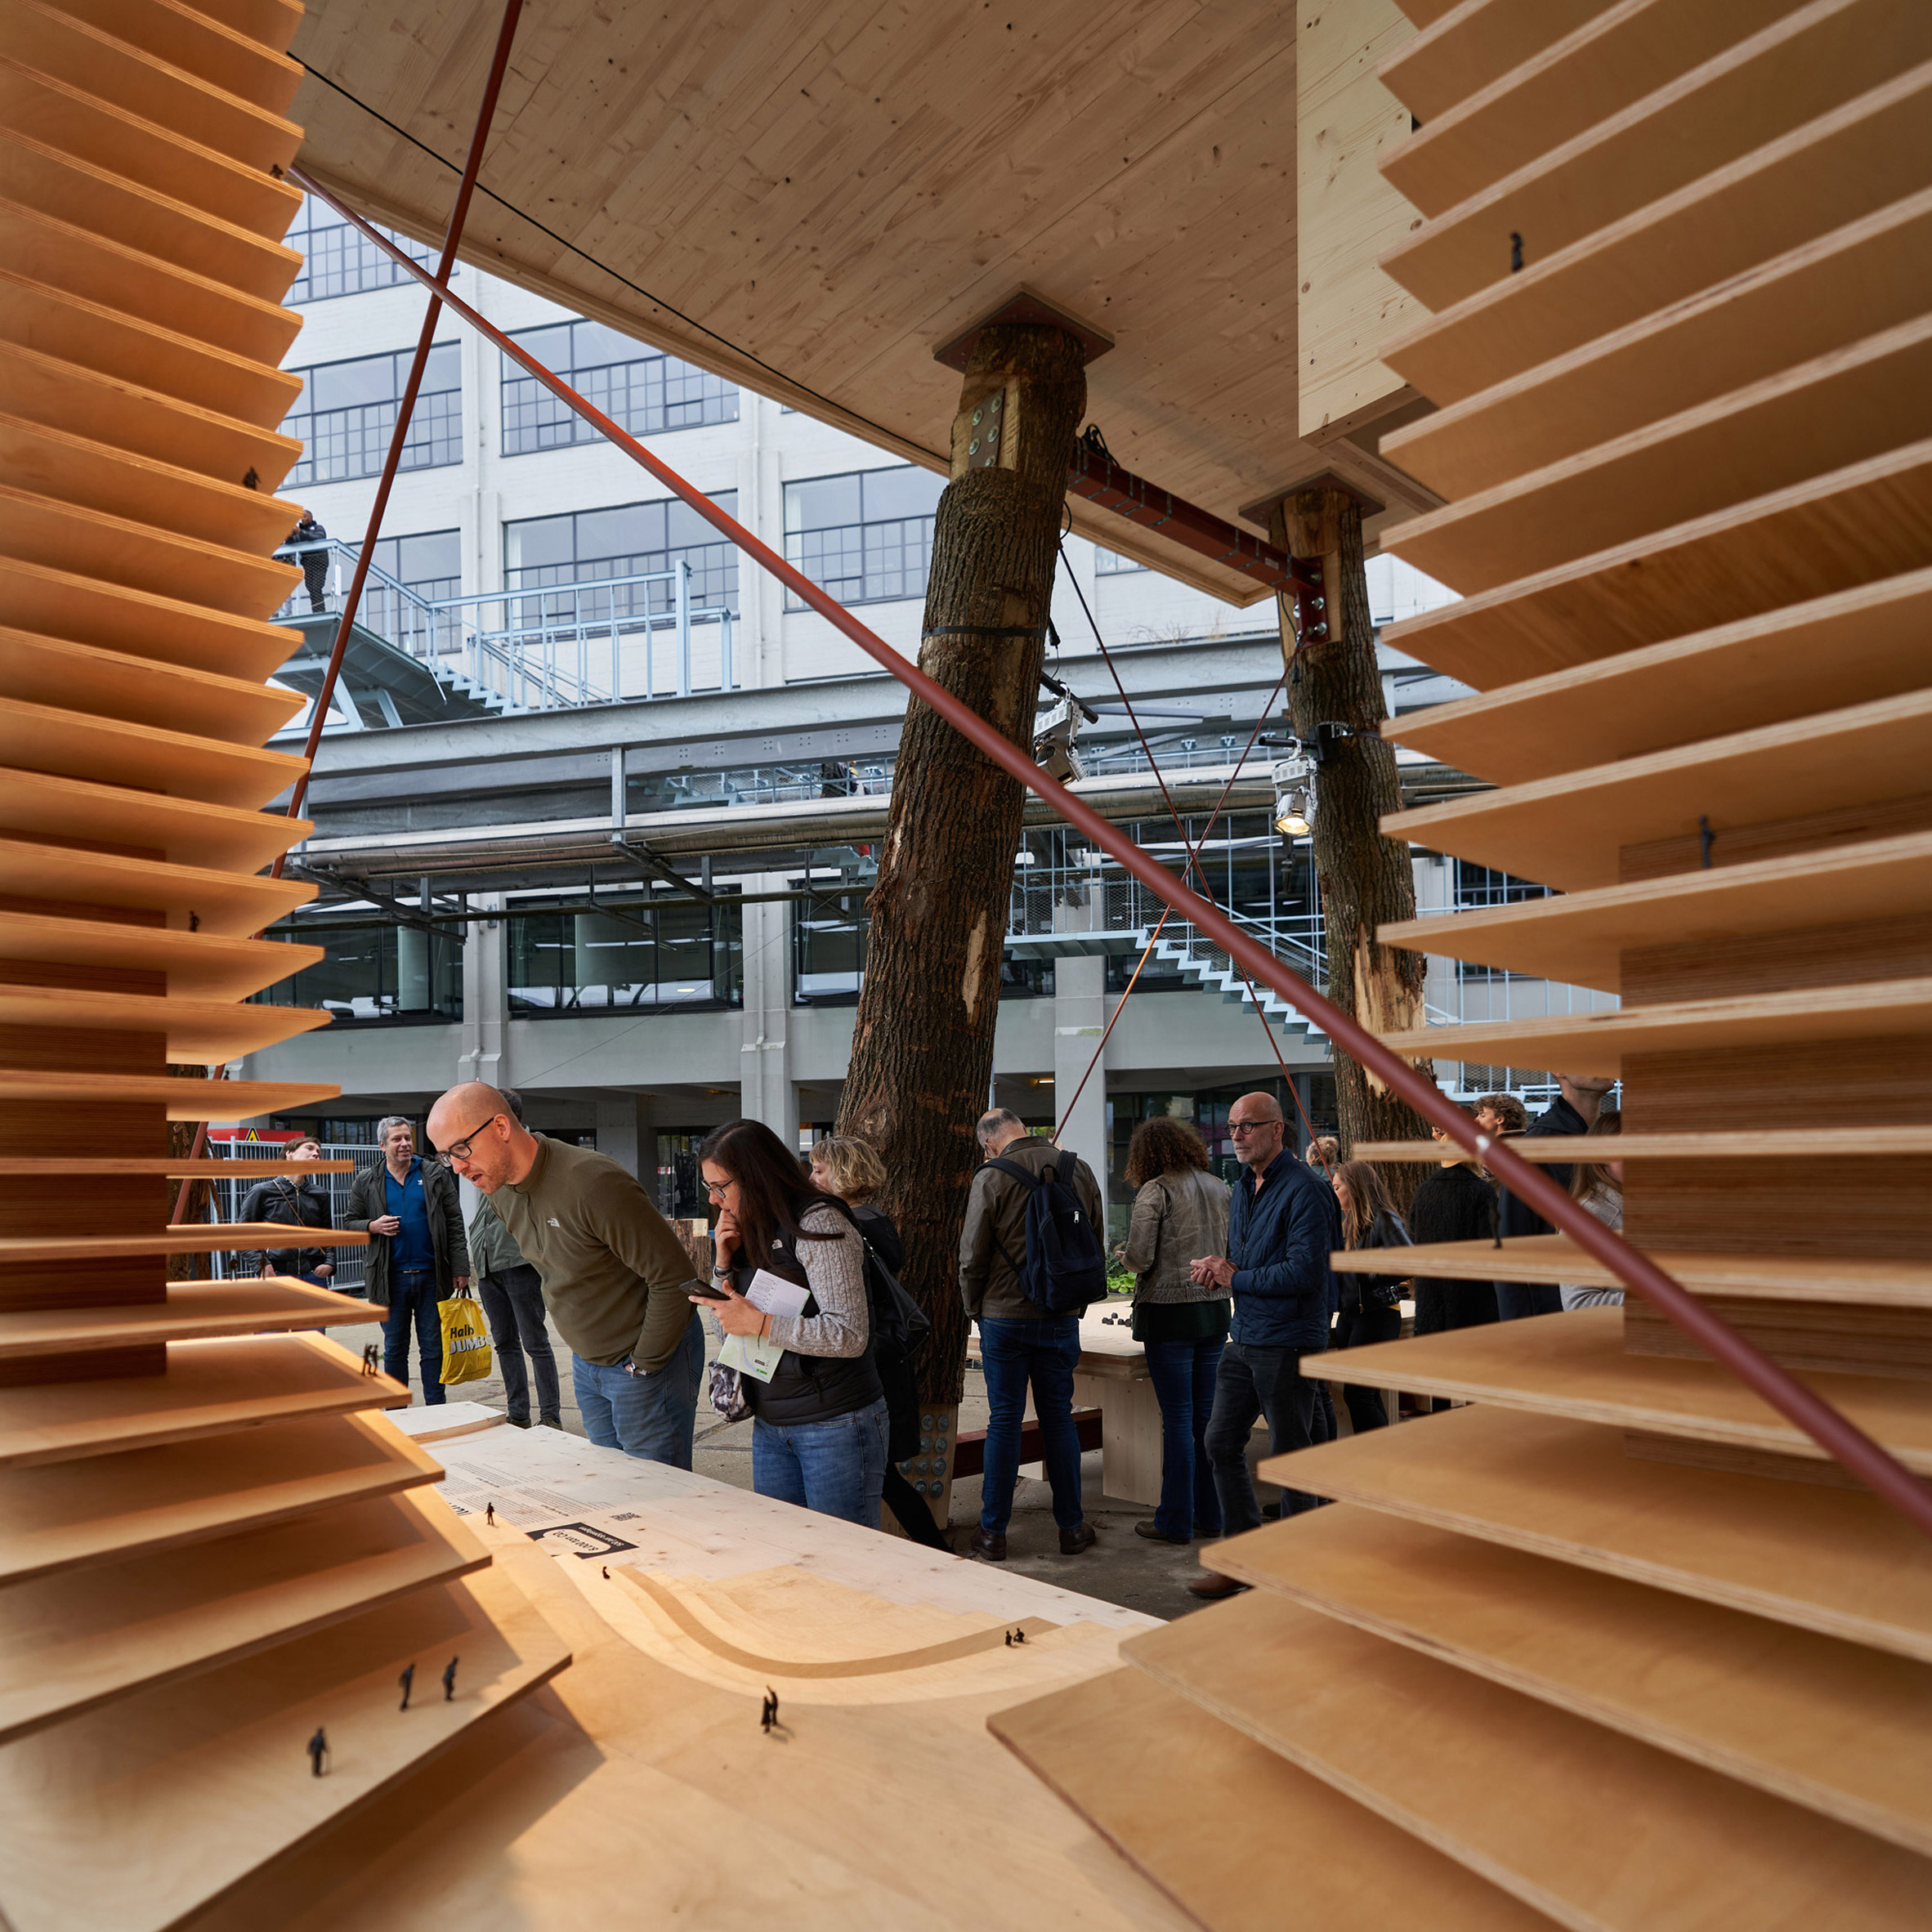 Design Bank Oranje.Timber Could Solve Dutch Housing Shortage And Be A Chance For